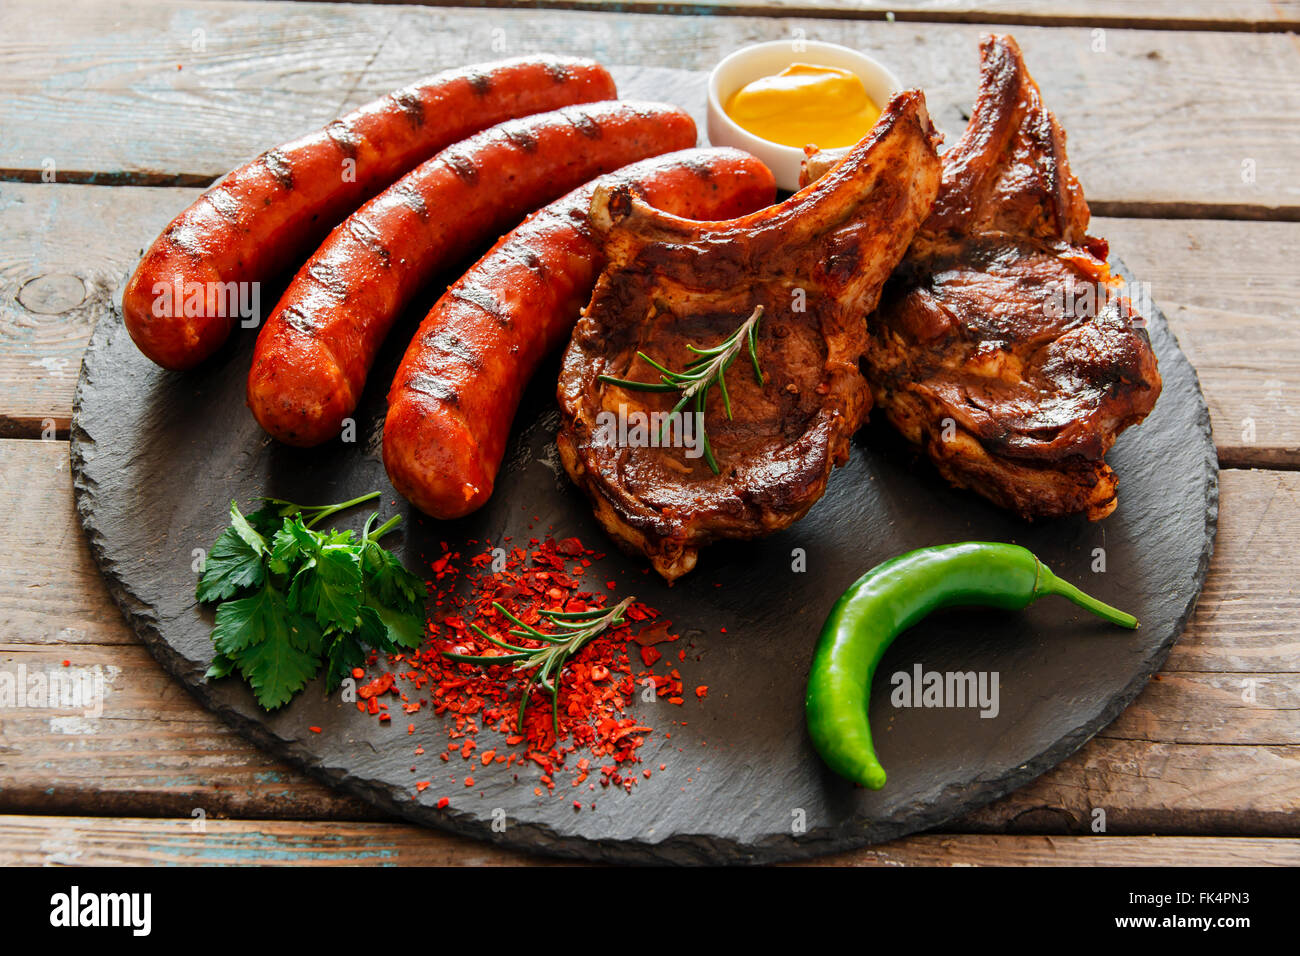 Grilled sausages and steak on the bone barbecue Stock Photo